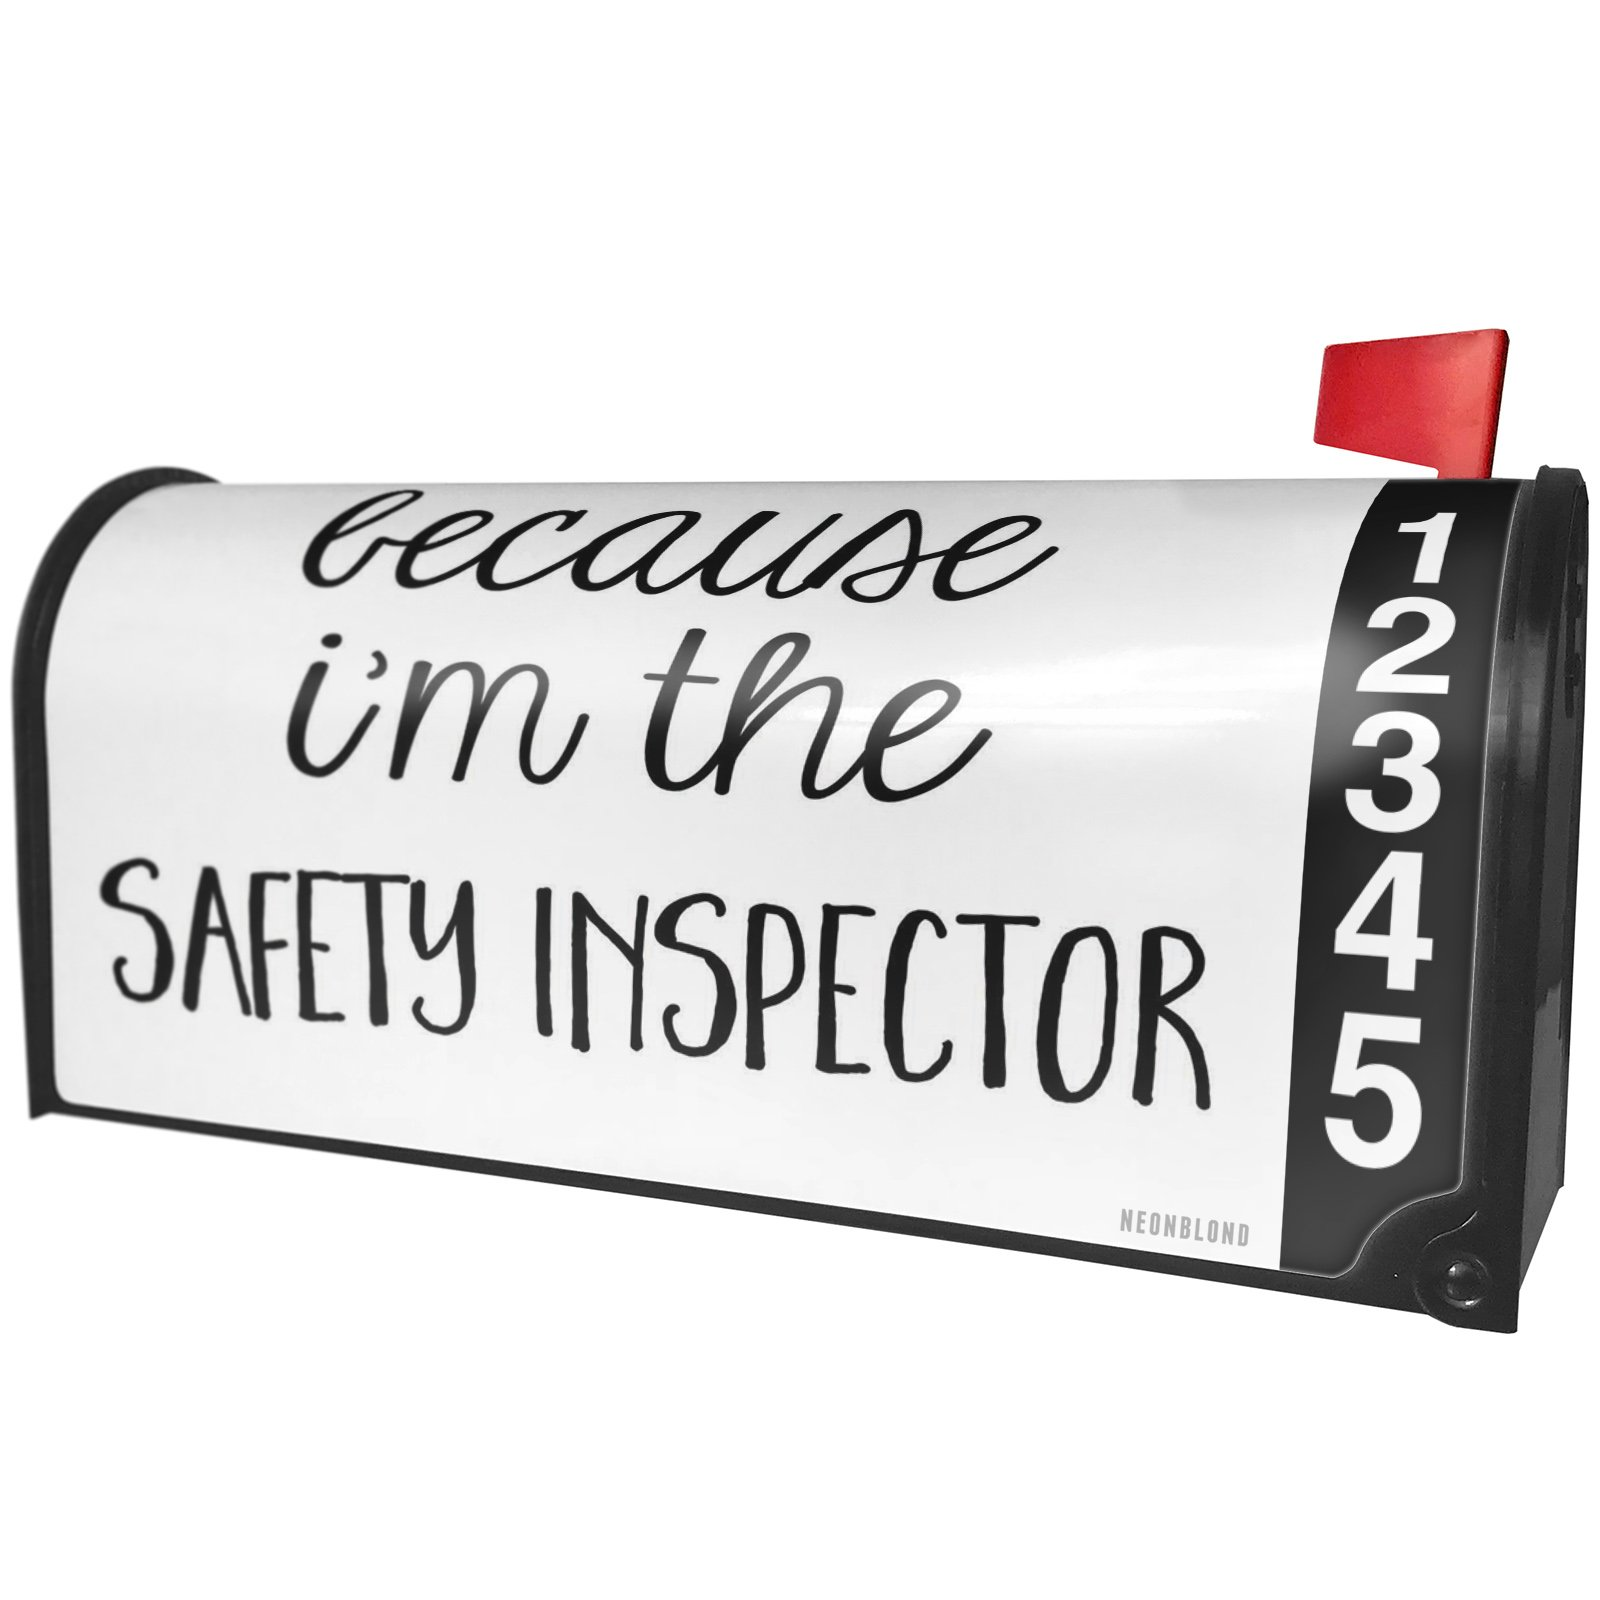 NEONBLOND Because I'm The Safety Inspector Funny Saying Magnetic Mailbox Cover Custom Numbers by NEONBLOND (Image #1)